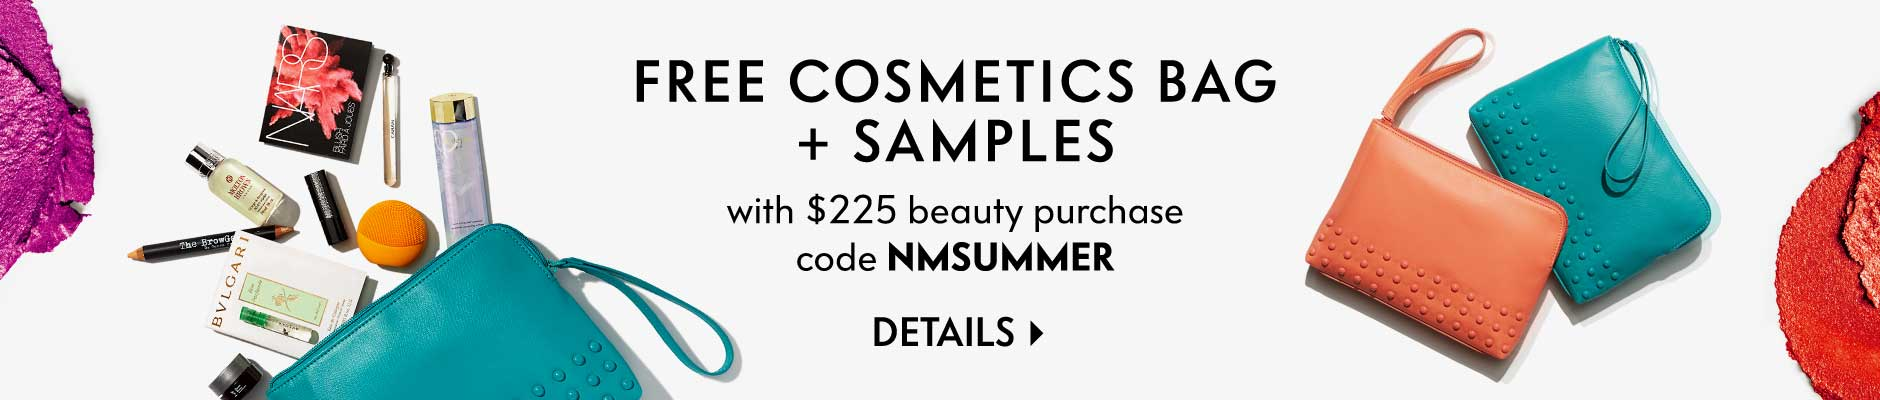 Free Cosmetics Bag + Samples with $225 beauty purchase | code NMSUMMER